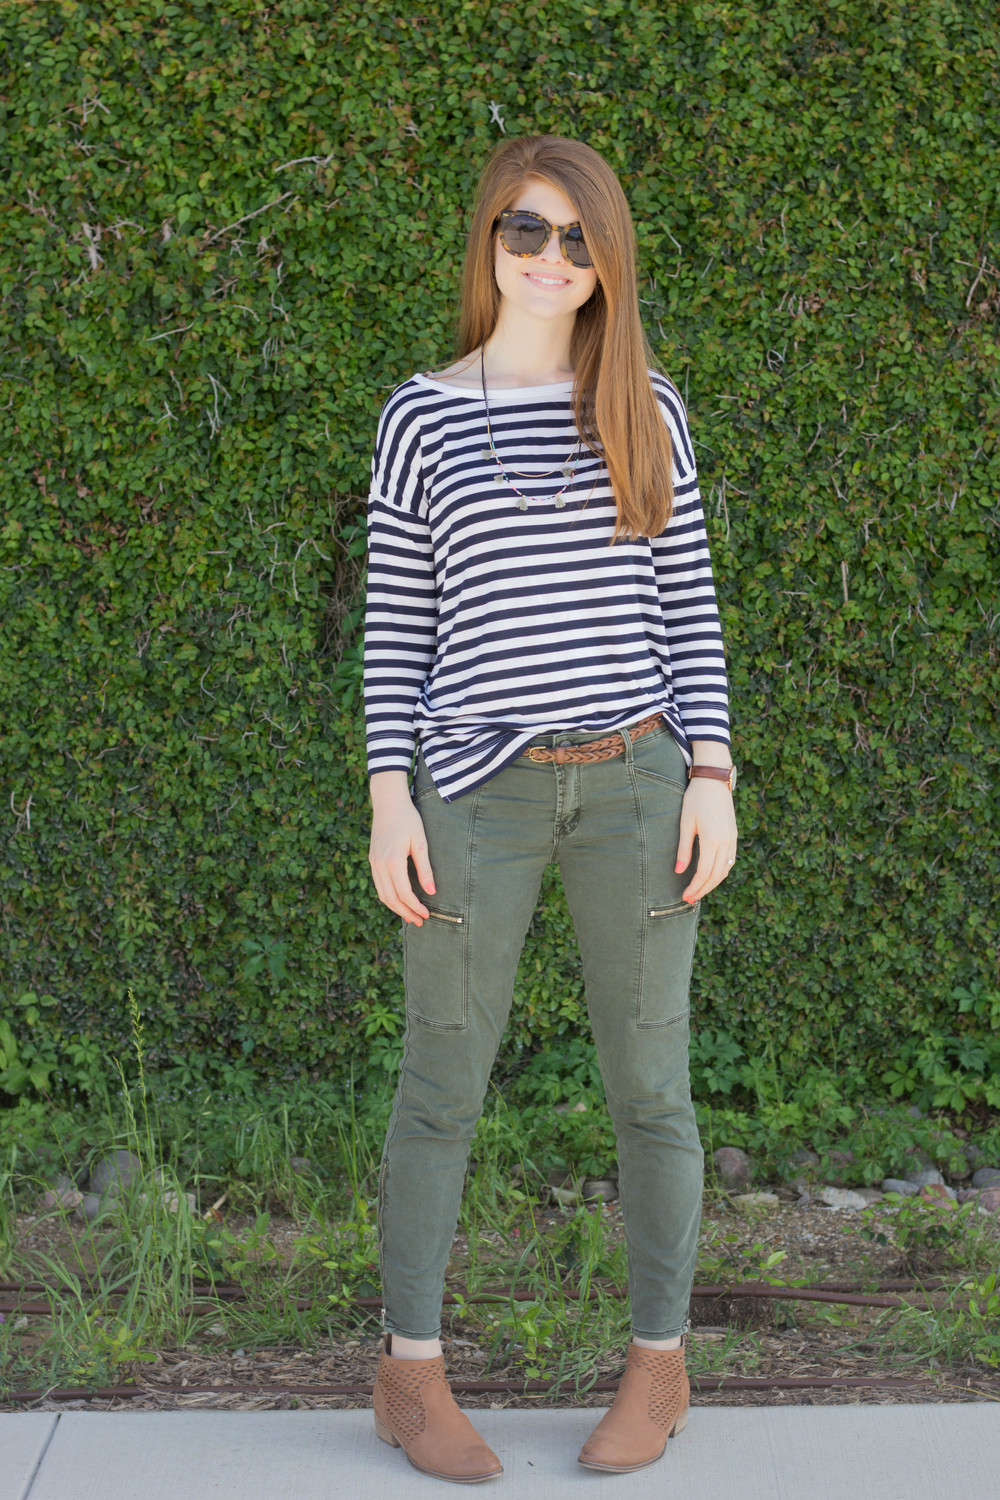 karen walker sunglasses, loft striped dolman tee, olive green pants, shashi tassel necklace